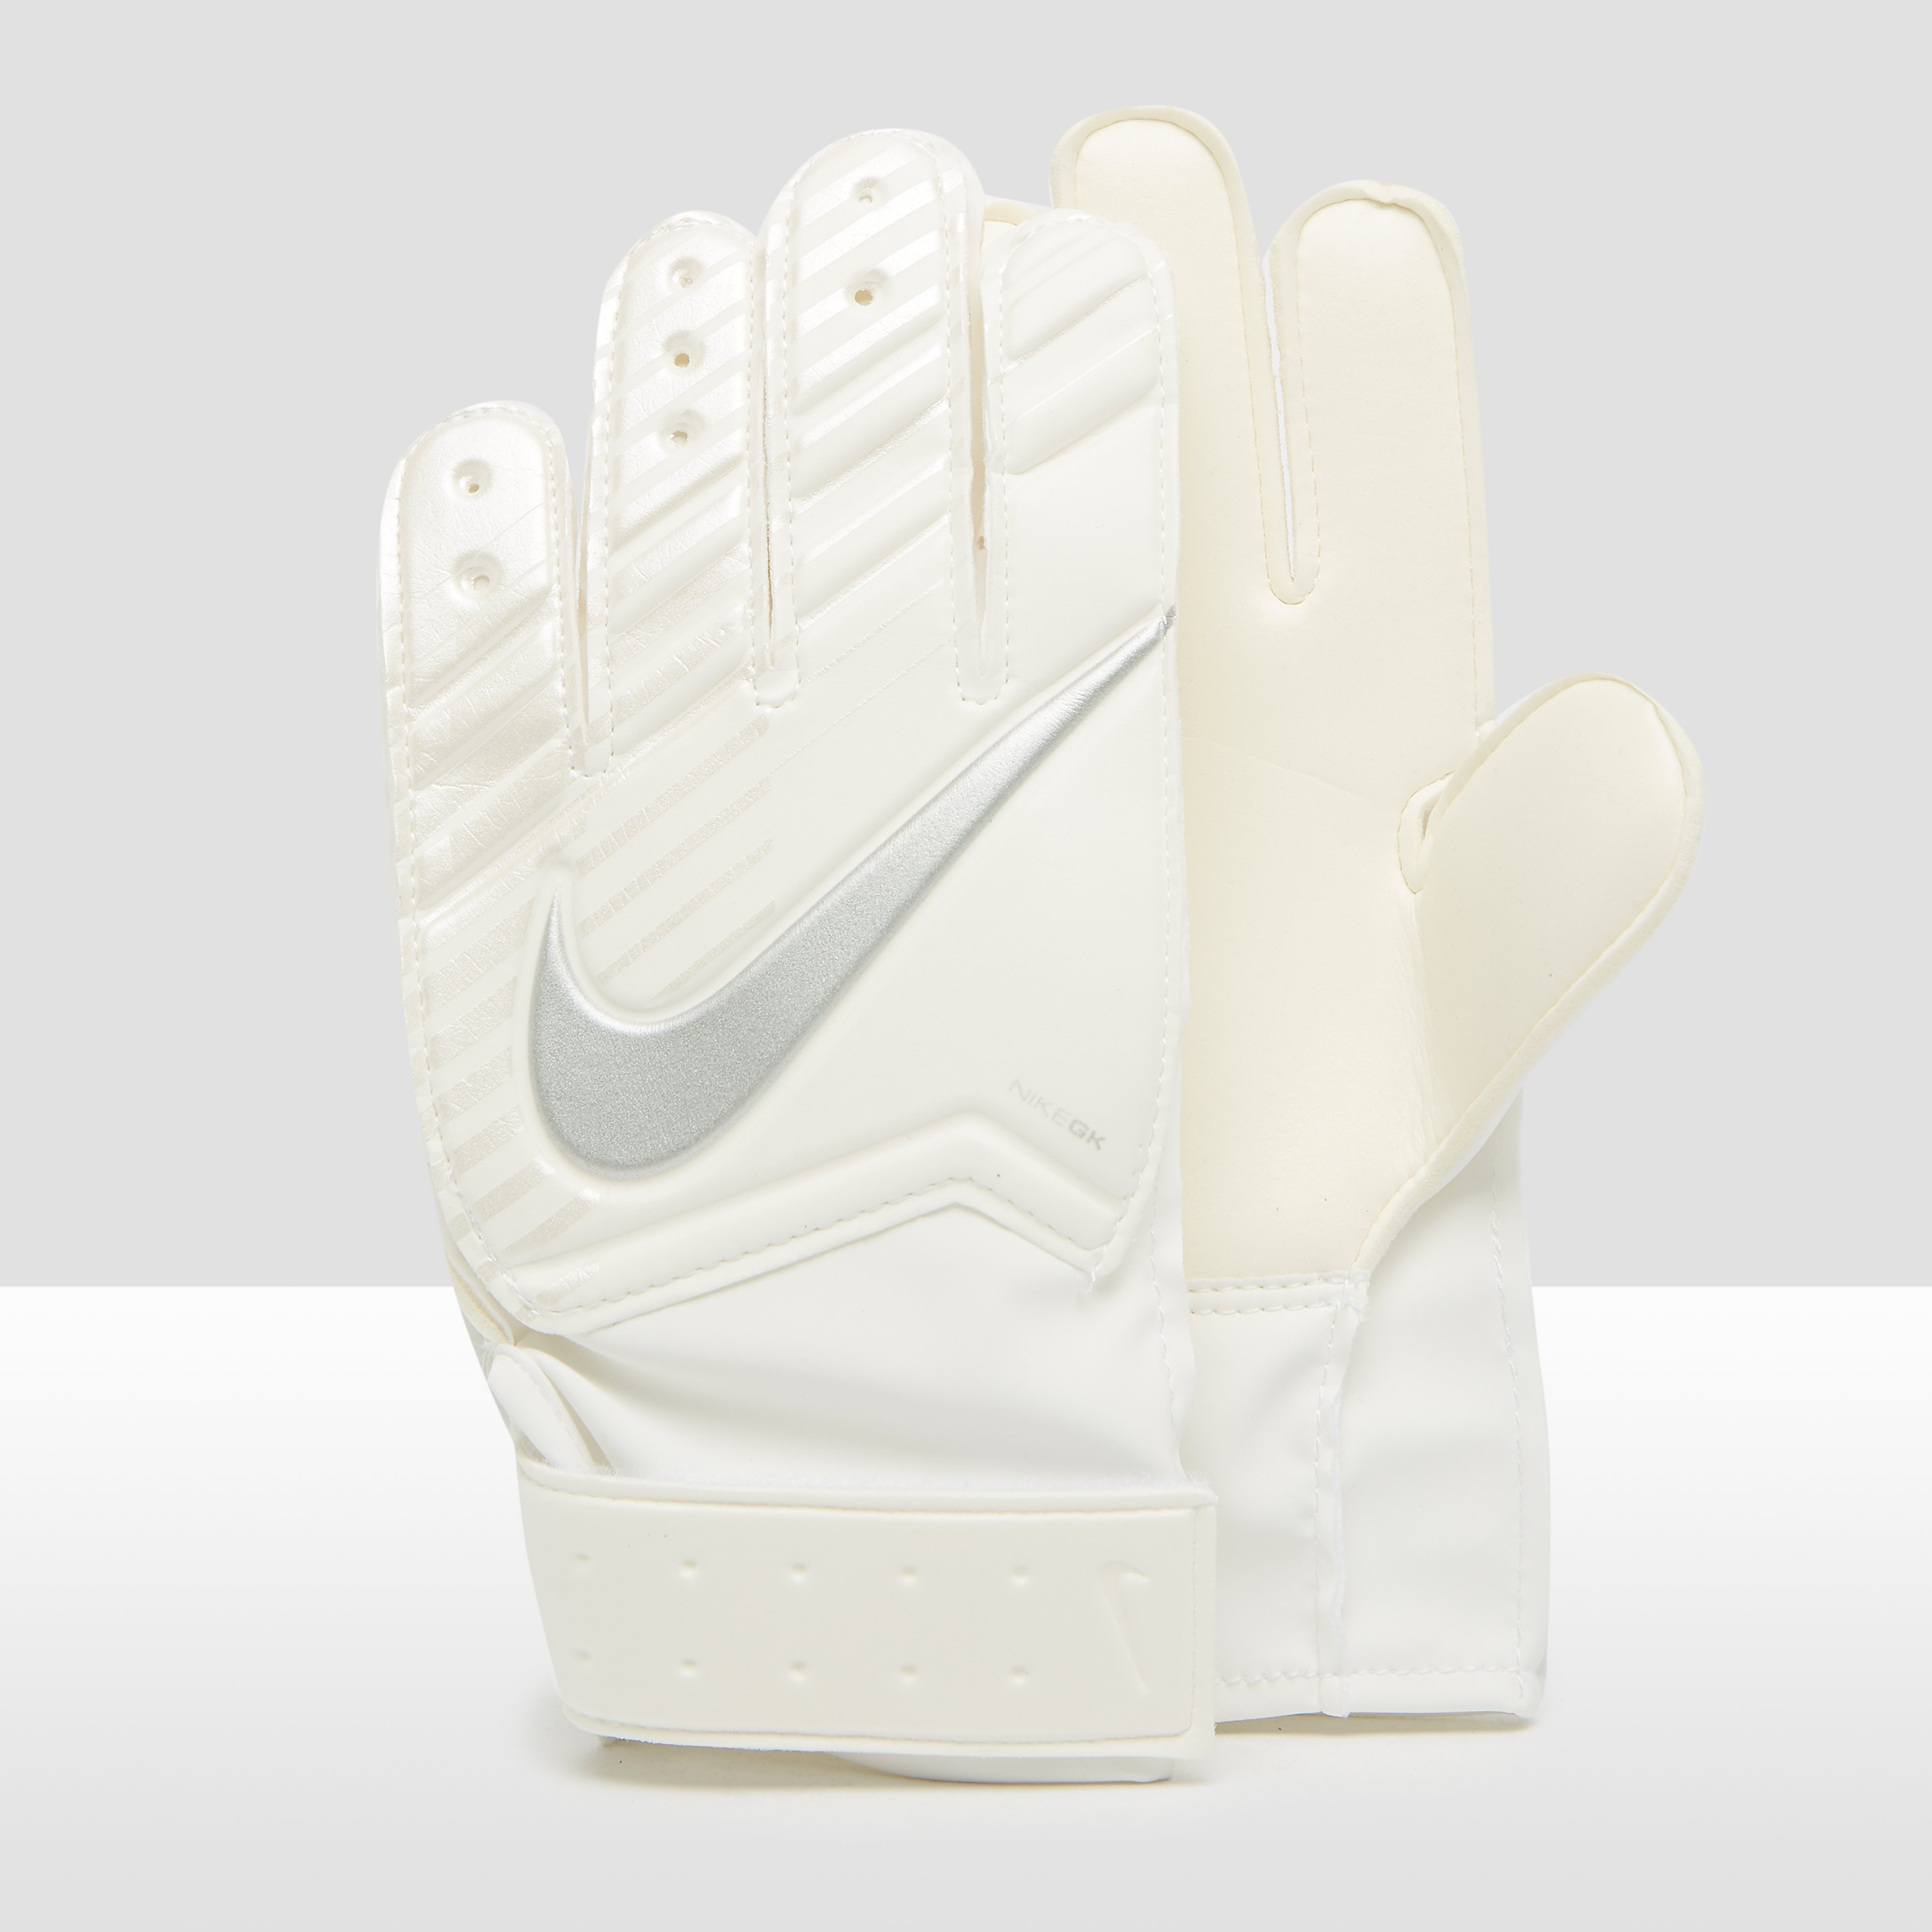 NIKE GOALKEEPER MATCH KEEPERSHANDSCHOENEN WIT KINDEREN